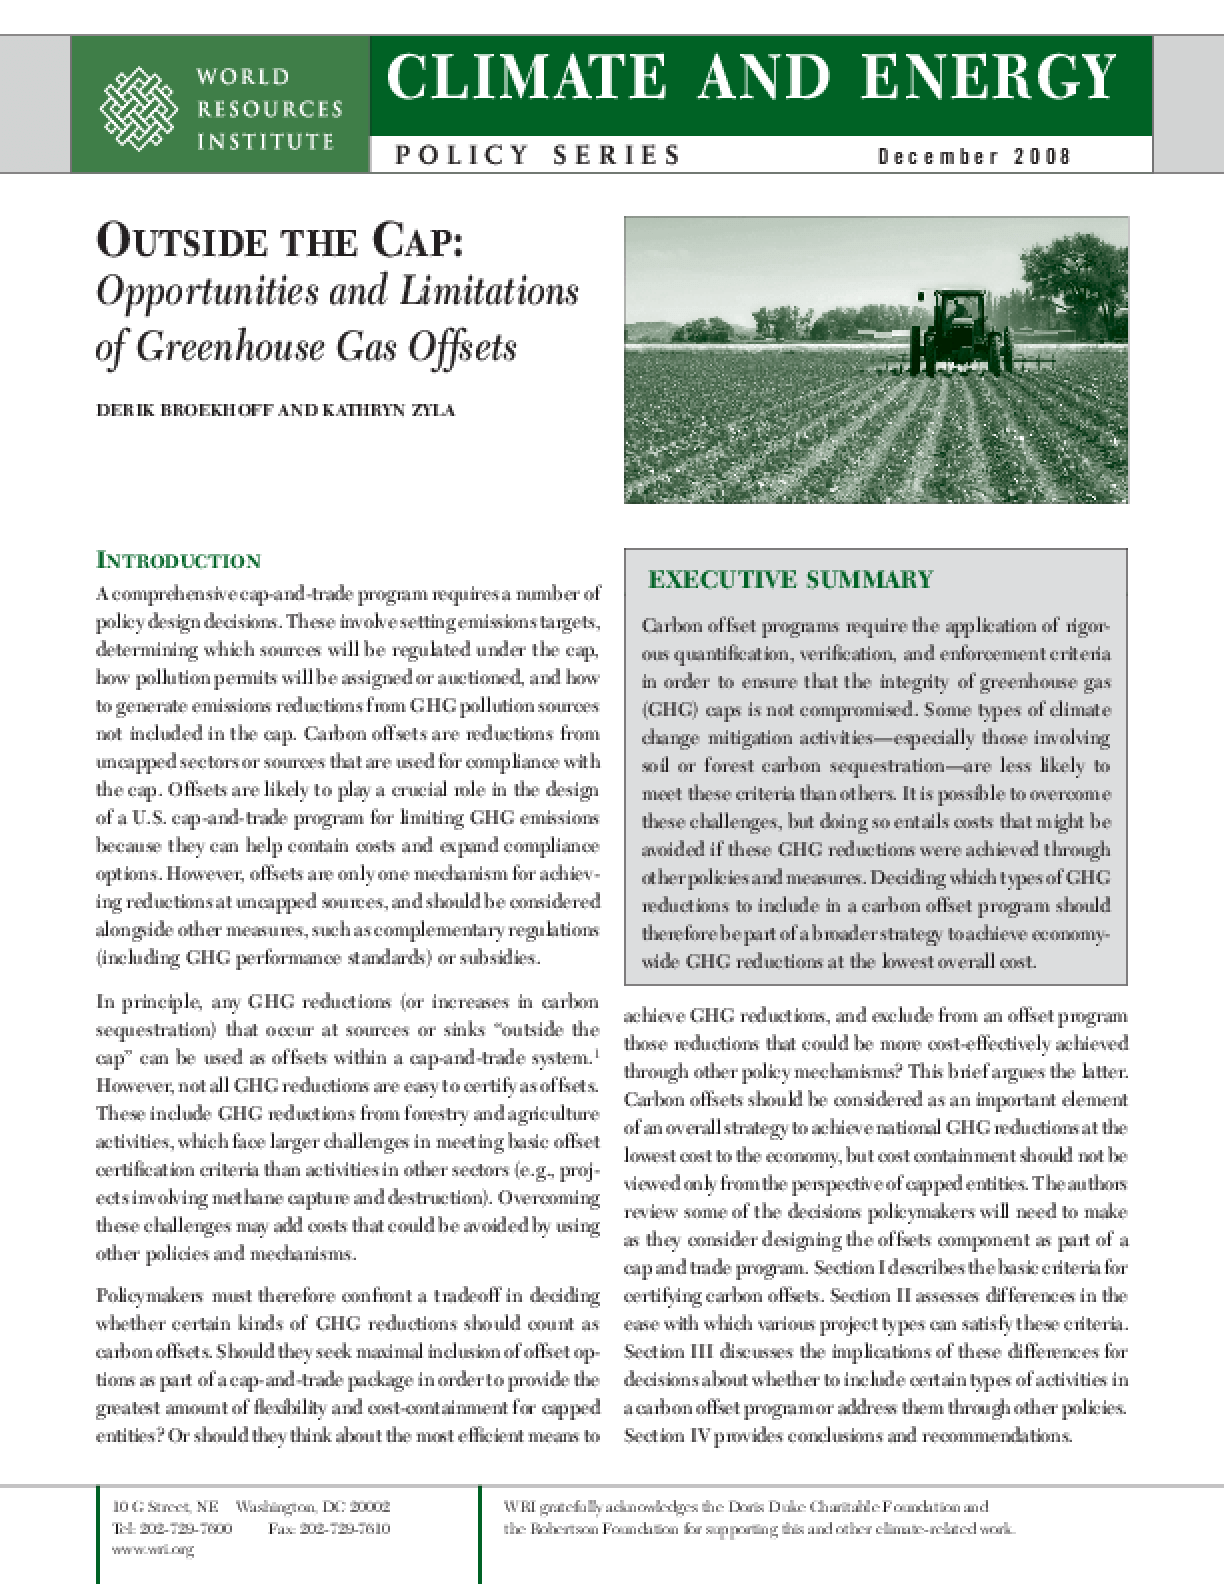 Outside the Cap: Opportunities and Limitations of Greenhouse Gas Offsets